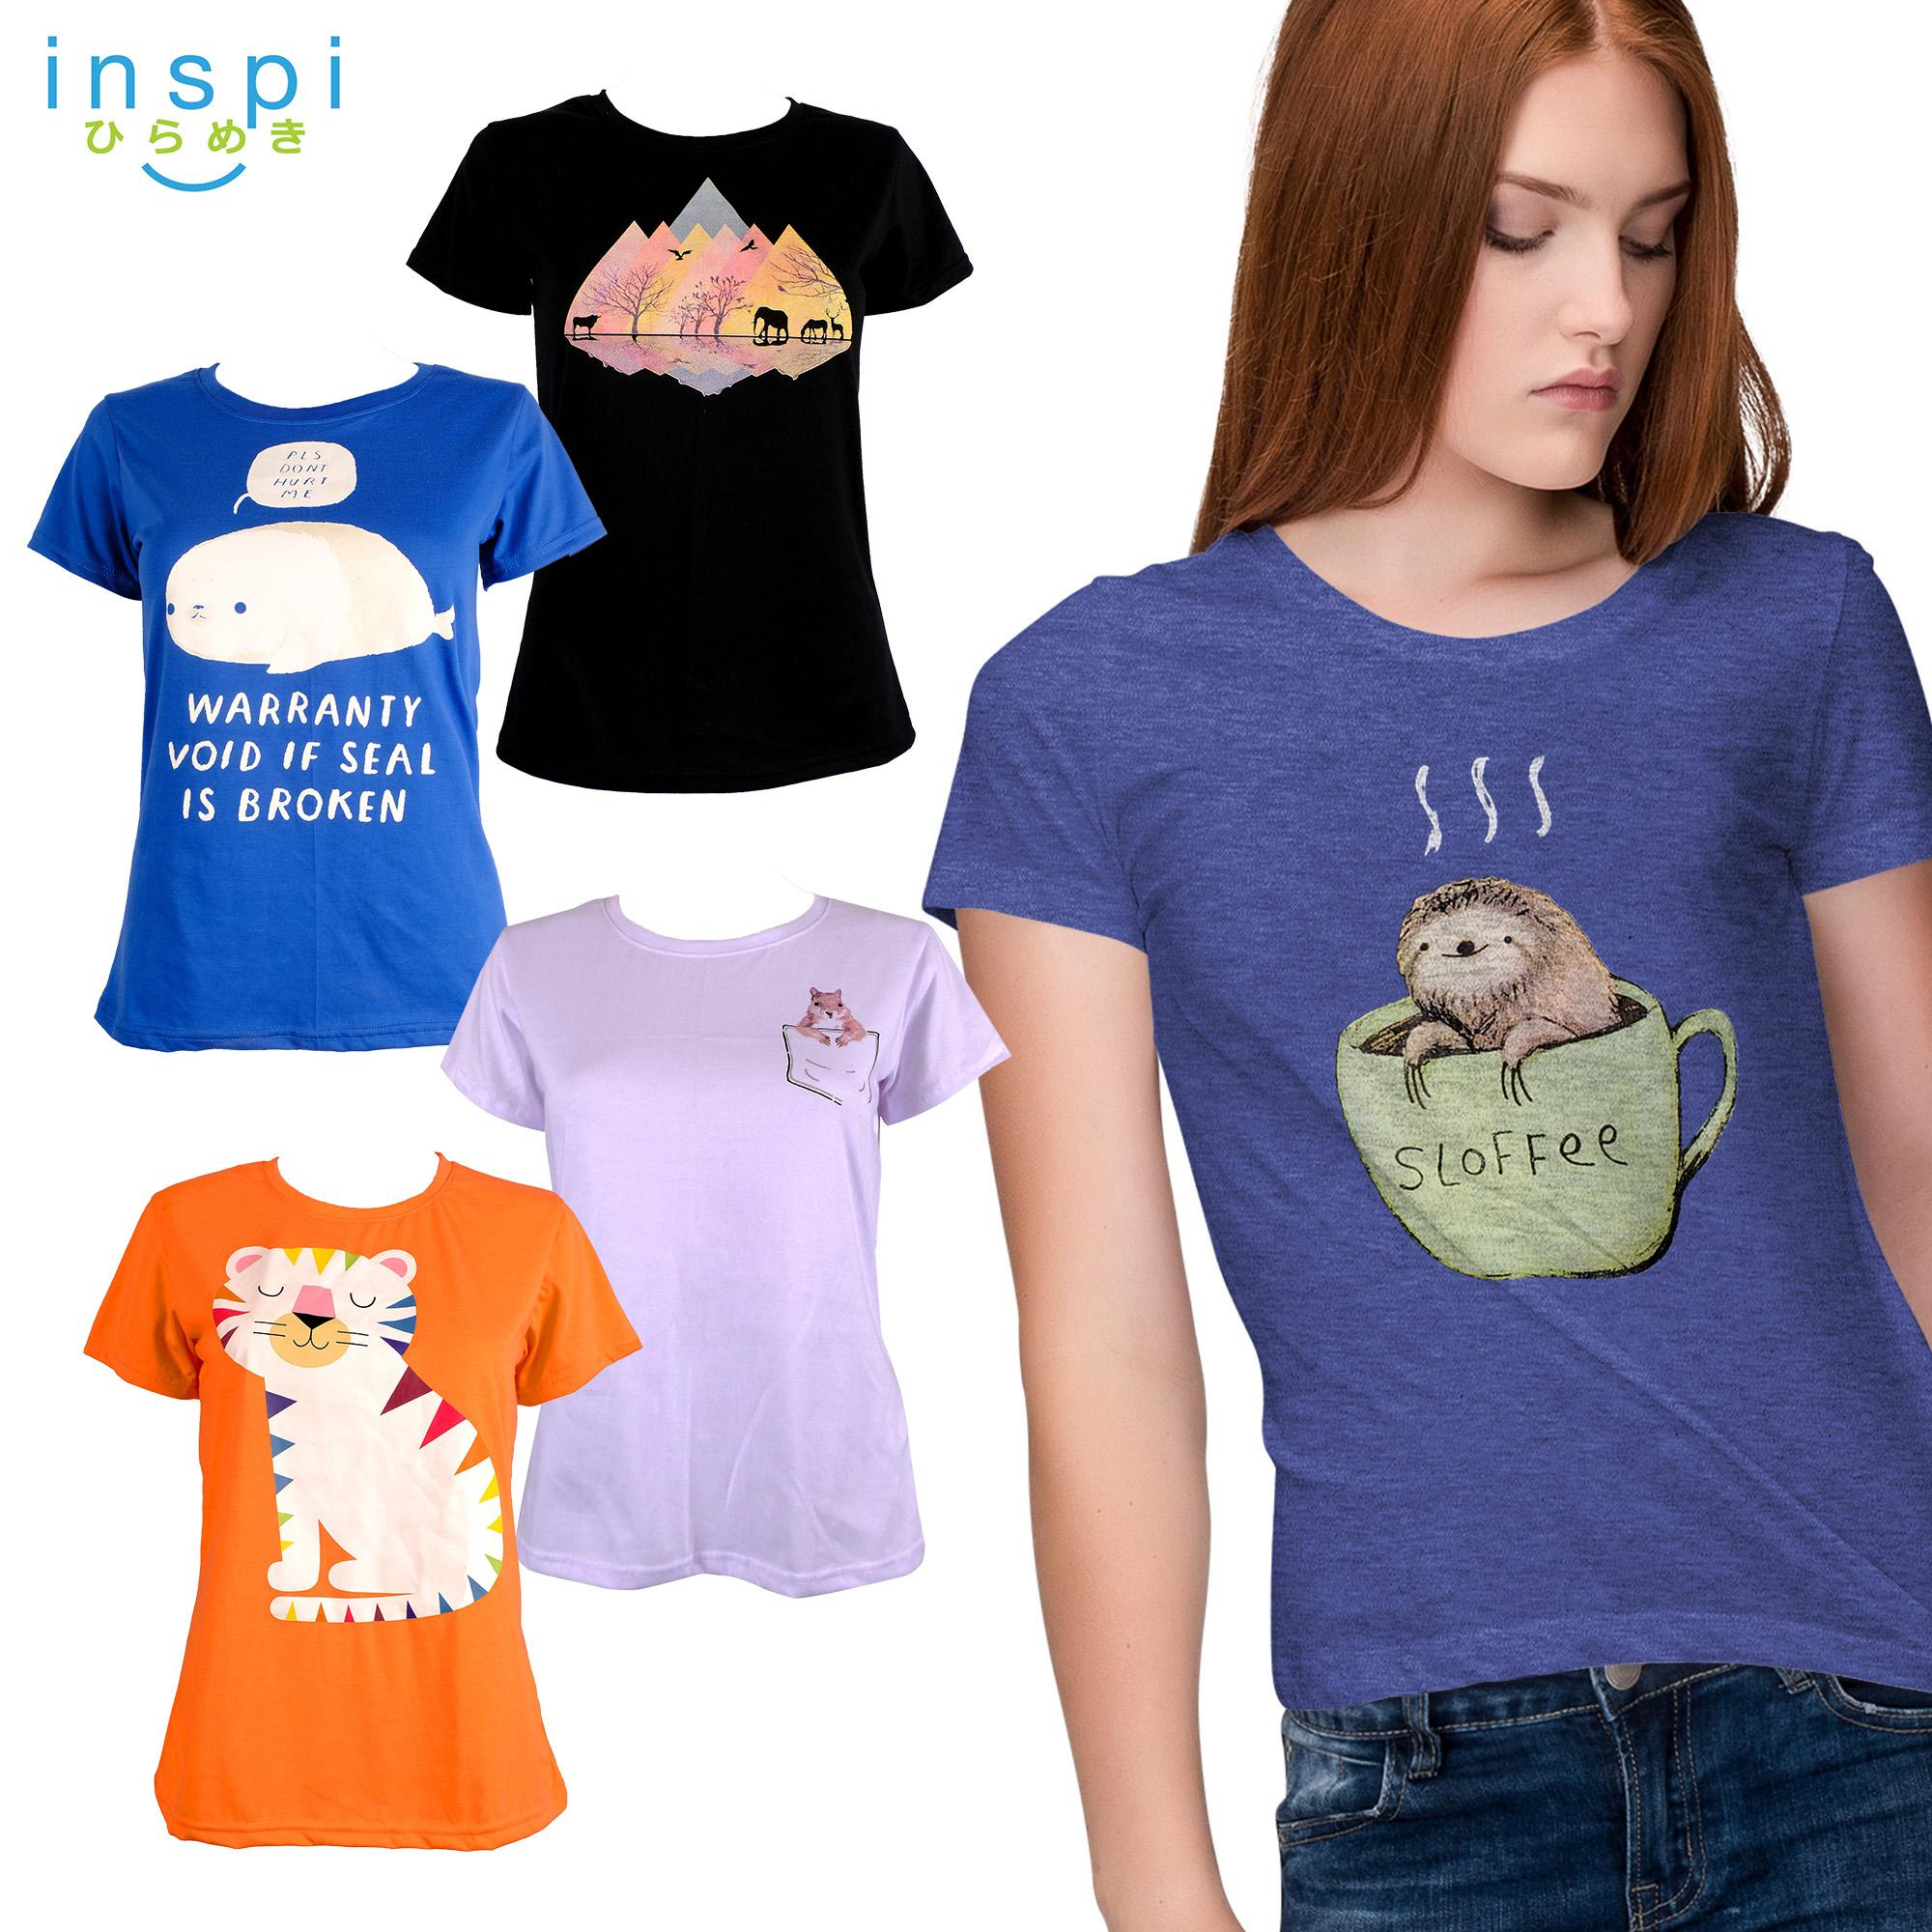 66ceafe5dfeac1 INSPI Tees Ladies Pet Collection tshirt printed graphic tee Ladies t shirt  shirts women tshirts for